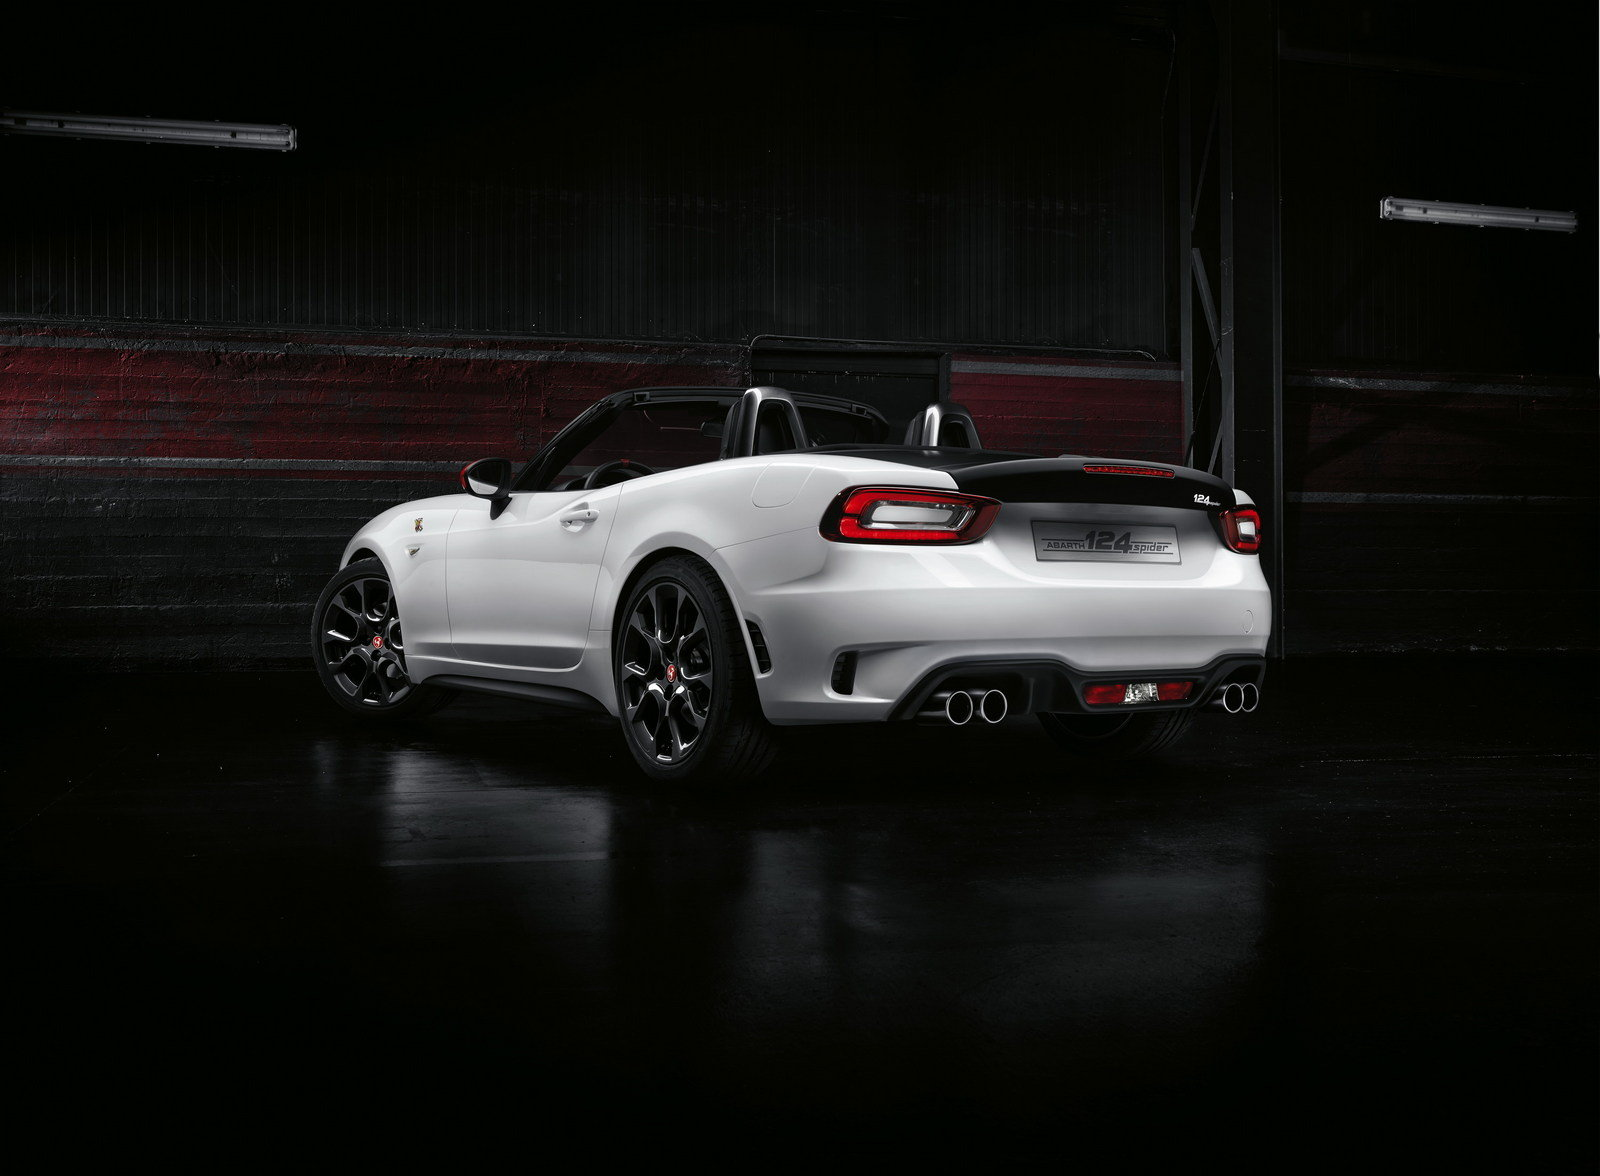 2018 fiat 124 spider abarth picture 667629 car review top speed. Black Bedroom Furniture Sets. Home Design Ideas